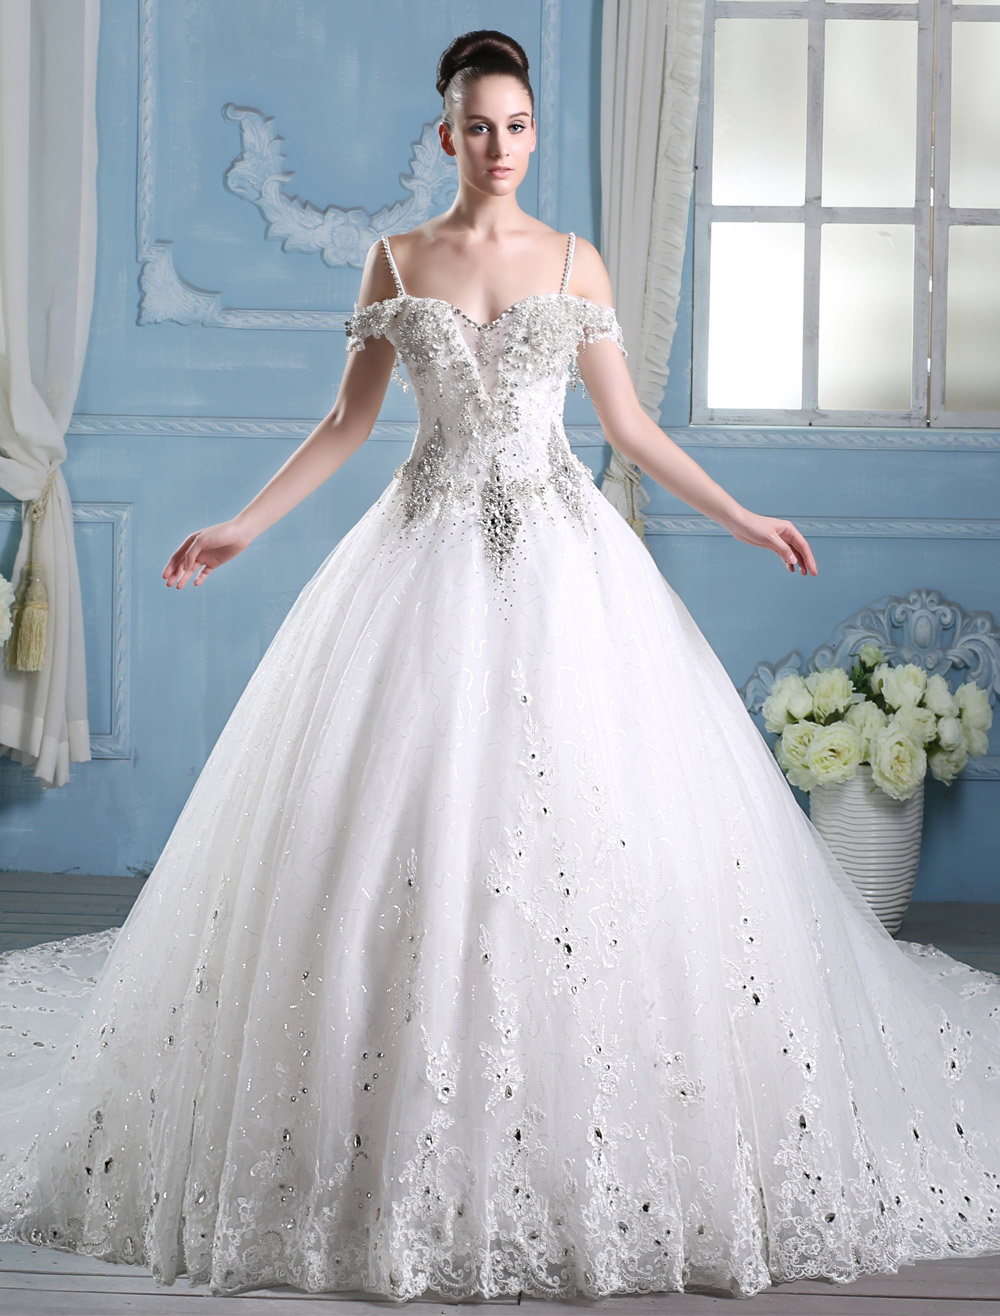 ball gown princess wedding dress in discounts milanoocom With robe de mariée discount avec bijoux argent